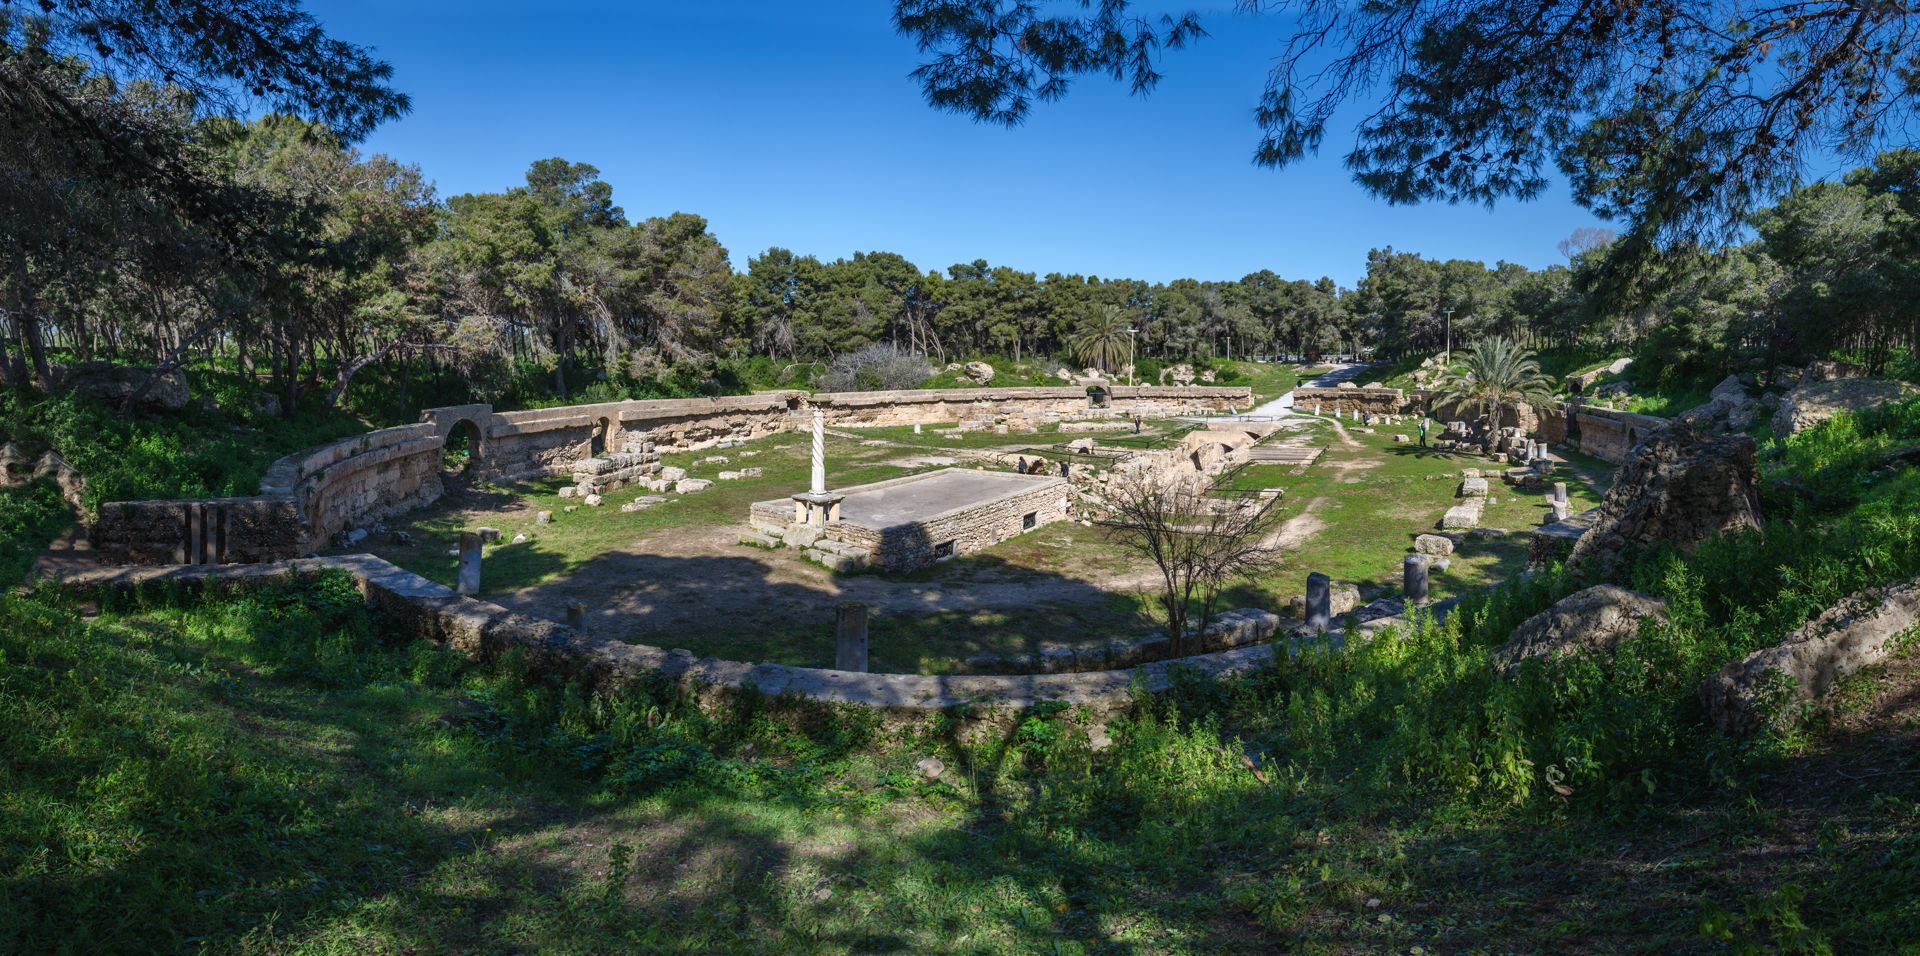 amphitheater carthage, punic amphitheater, what to do in carthage tunisia, sightseeing carthage, punic civilization, backpacking tunisia, backpacking carthage, guide to carthage, how to visit carthage